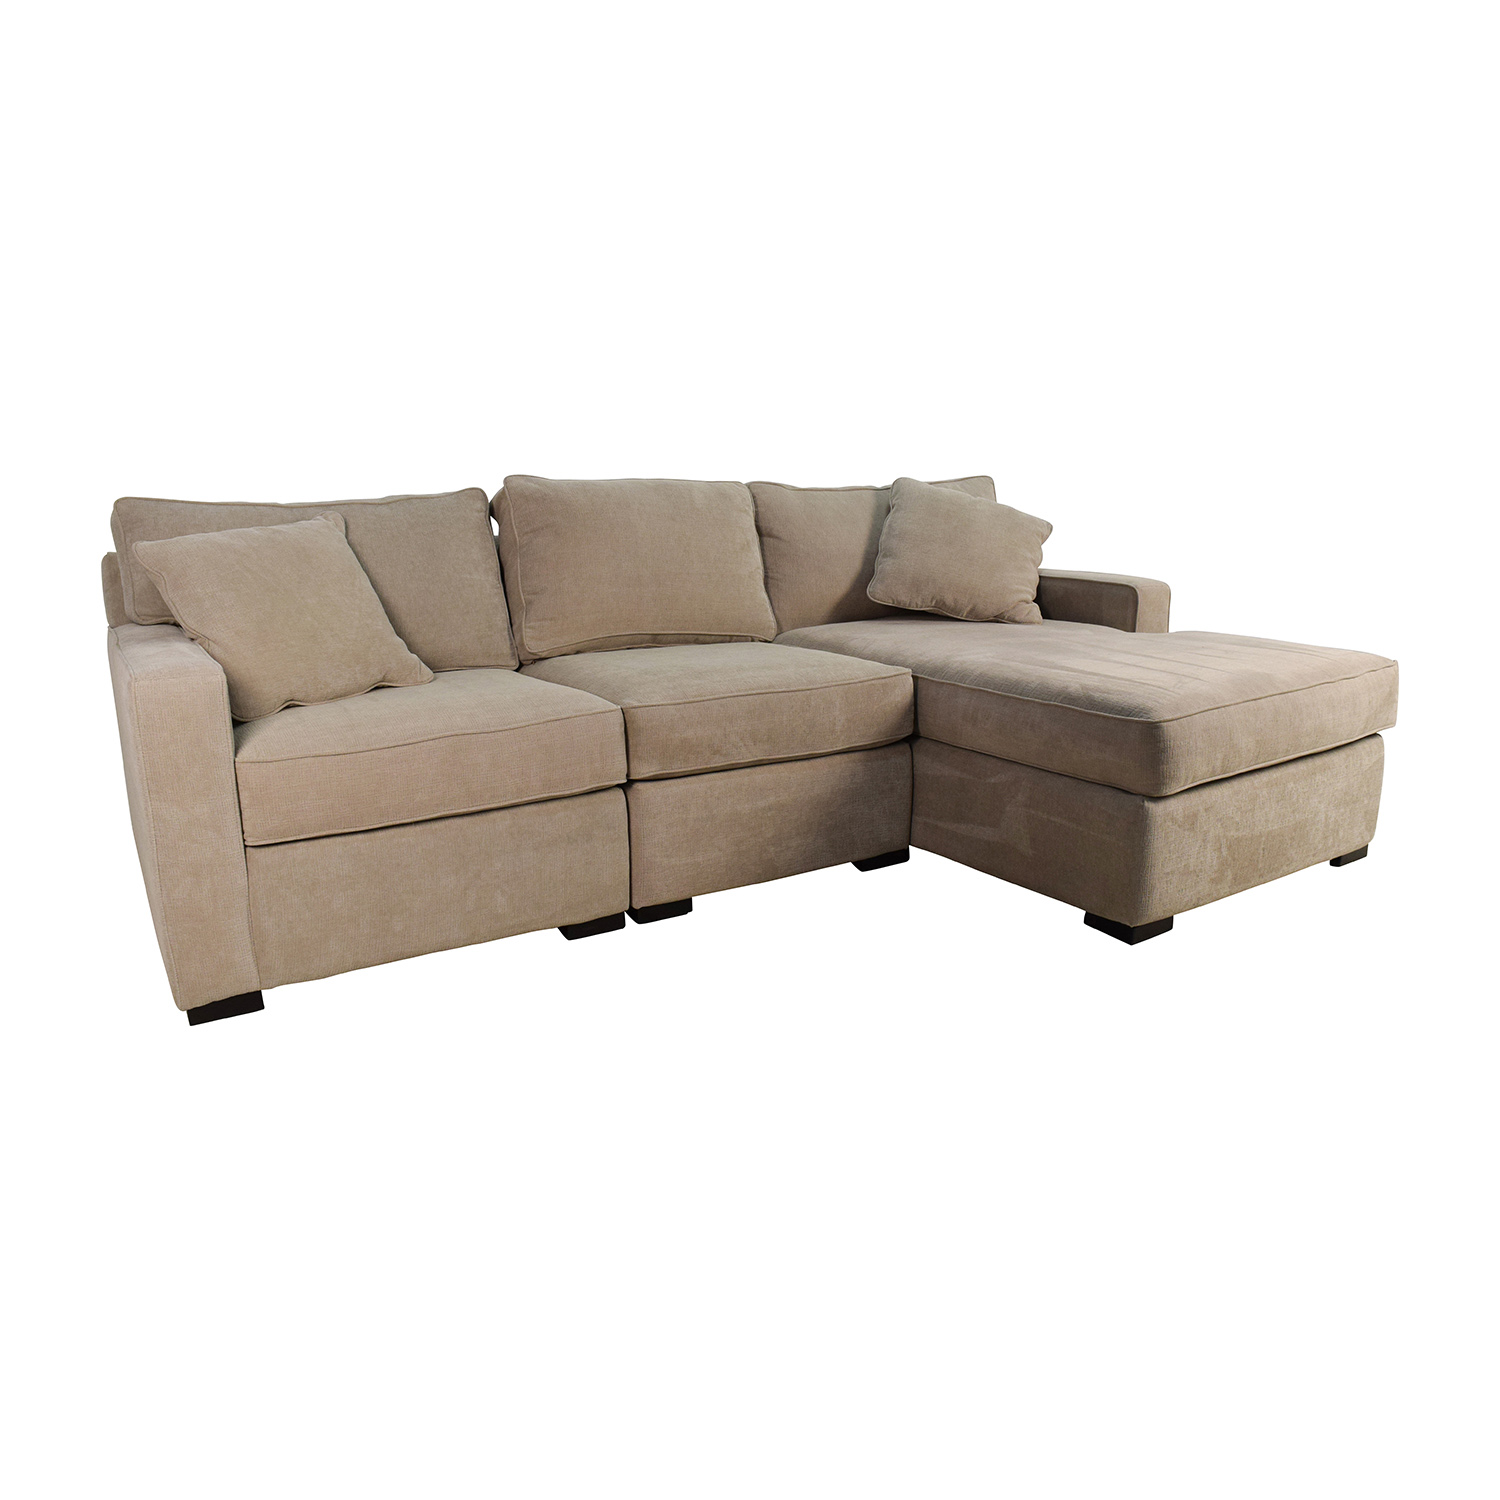 37% OFF Macy s Radley 3 Piece Fabric Chaise Sectional Sofa Sofas